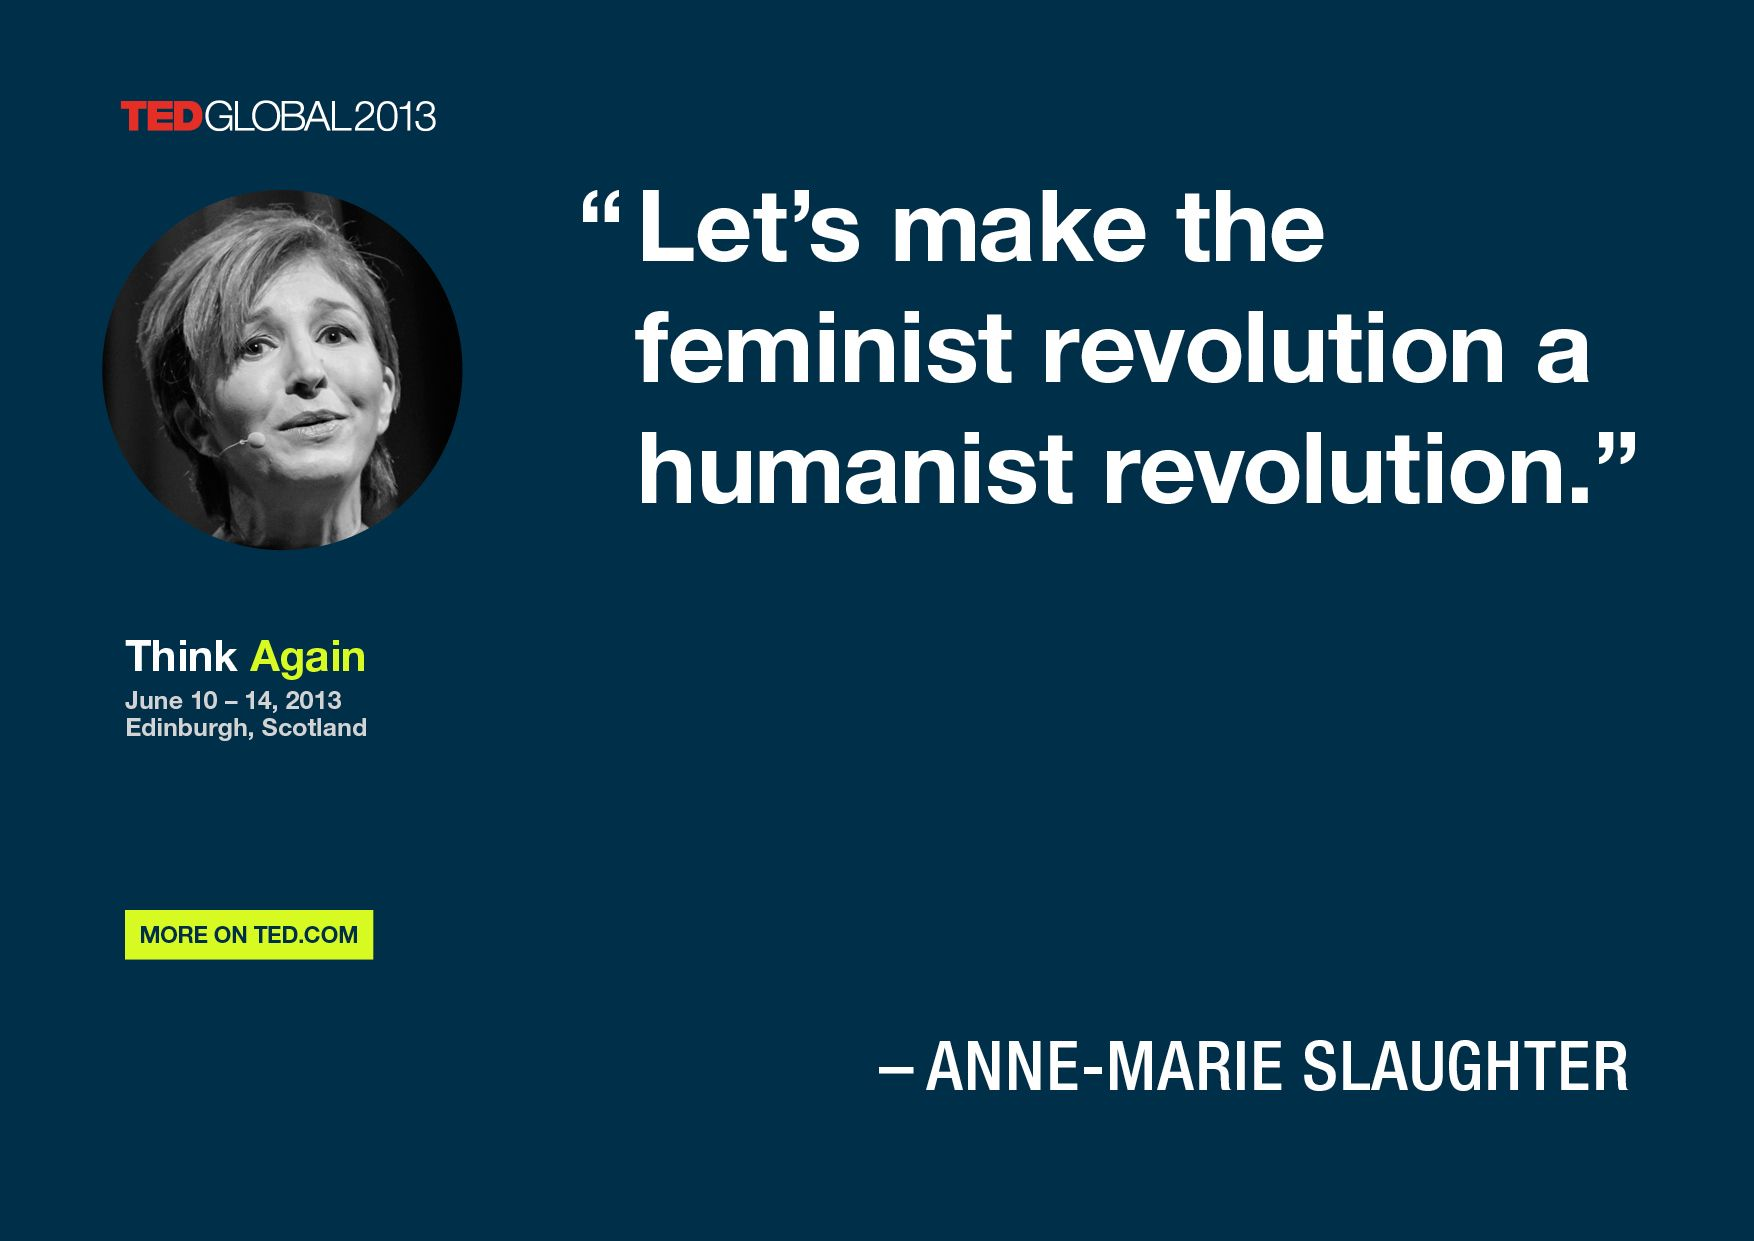 Anne-Marie Slaughter quoted at TEDGlobal 2013 / Photo: James Duncan Davidson